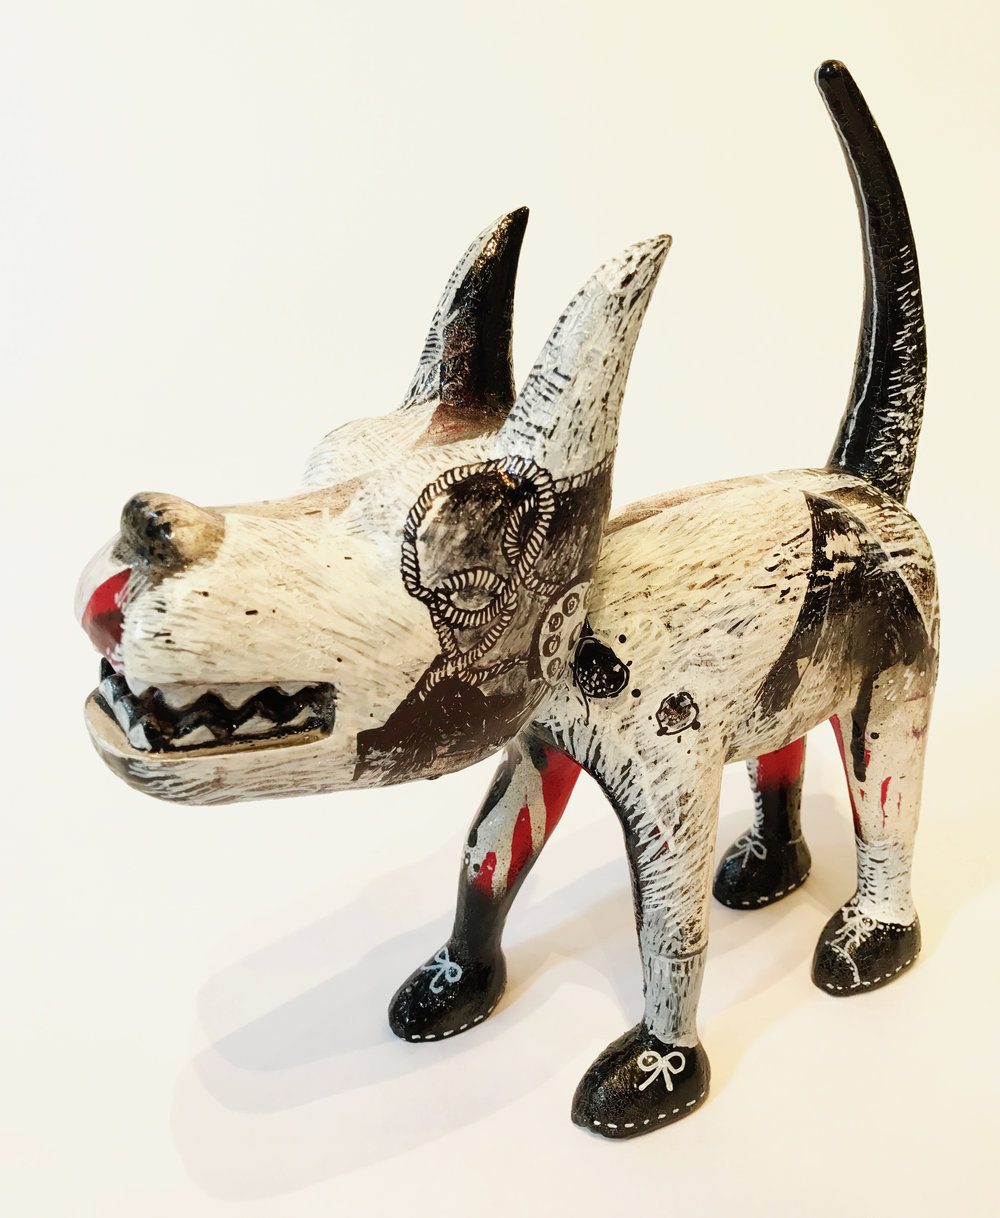 """Dog 6"" Sculpture, unique item 27 x 24 x 9 cm 2010"